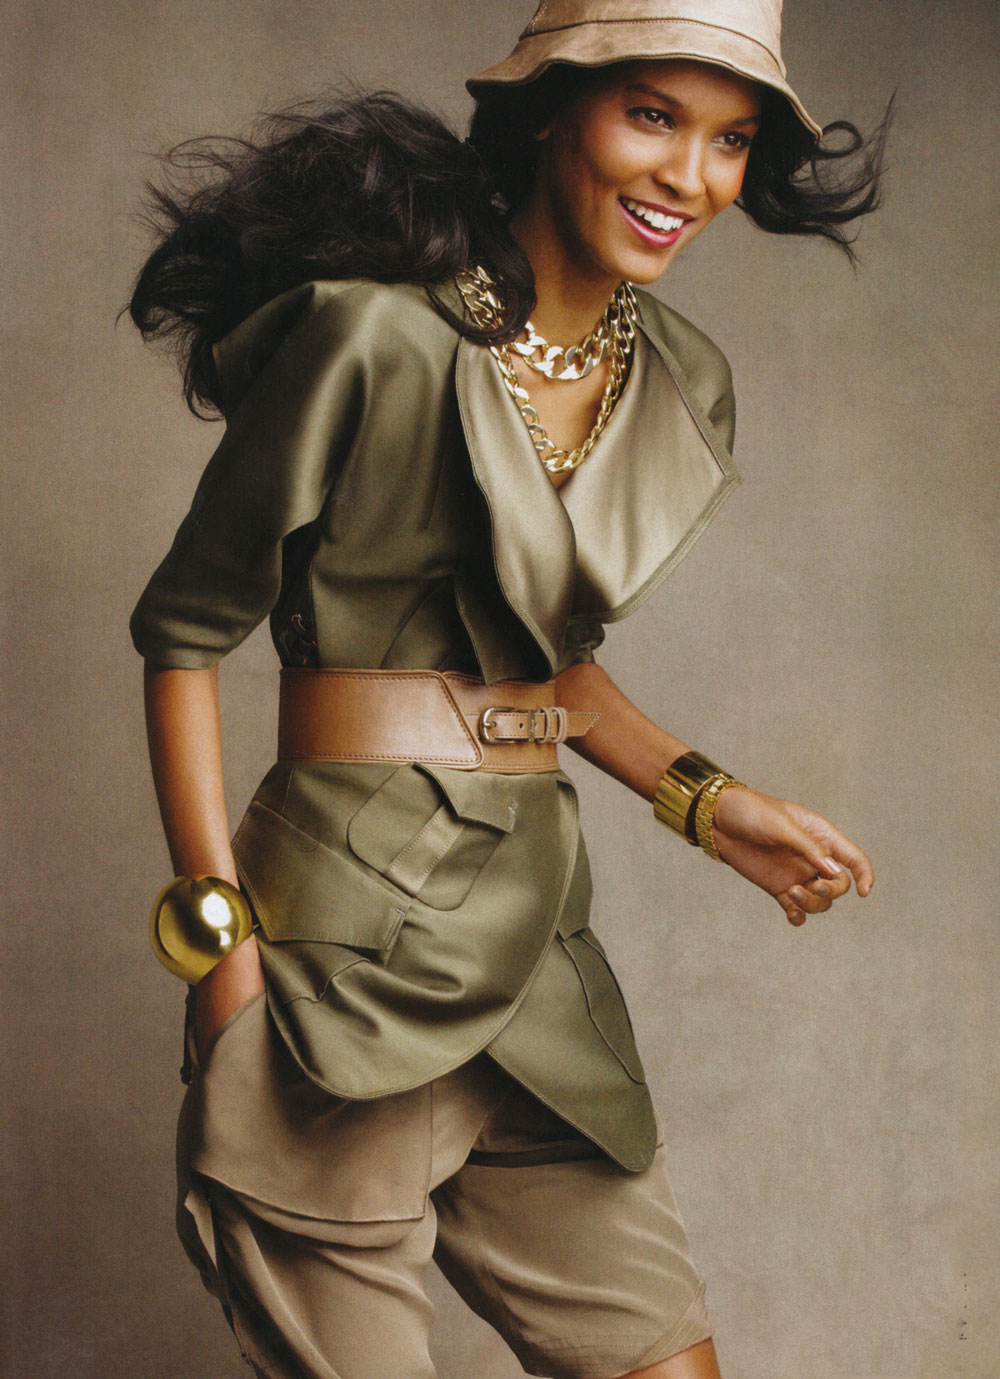 Liya Kebede in Desert fox / Vogue US March 2009 (photography: Patrick Demarchelier, styling: Marie-Amelie Sauve)